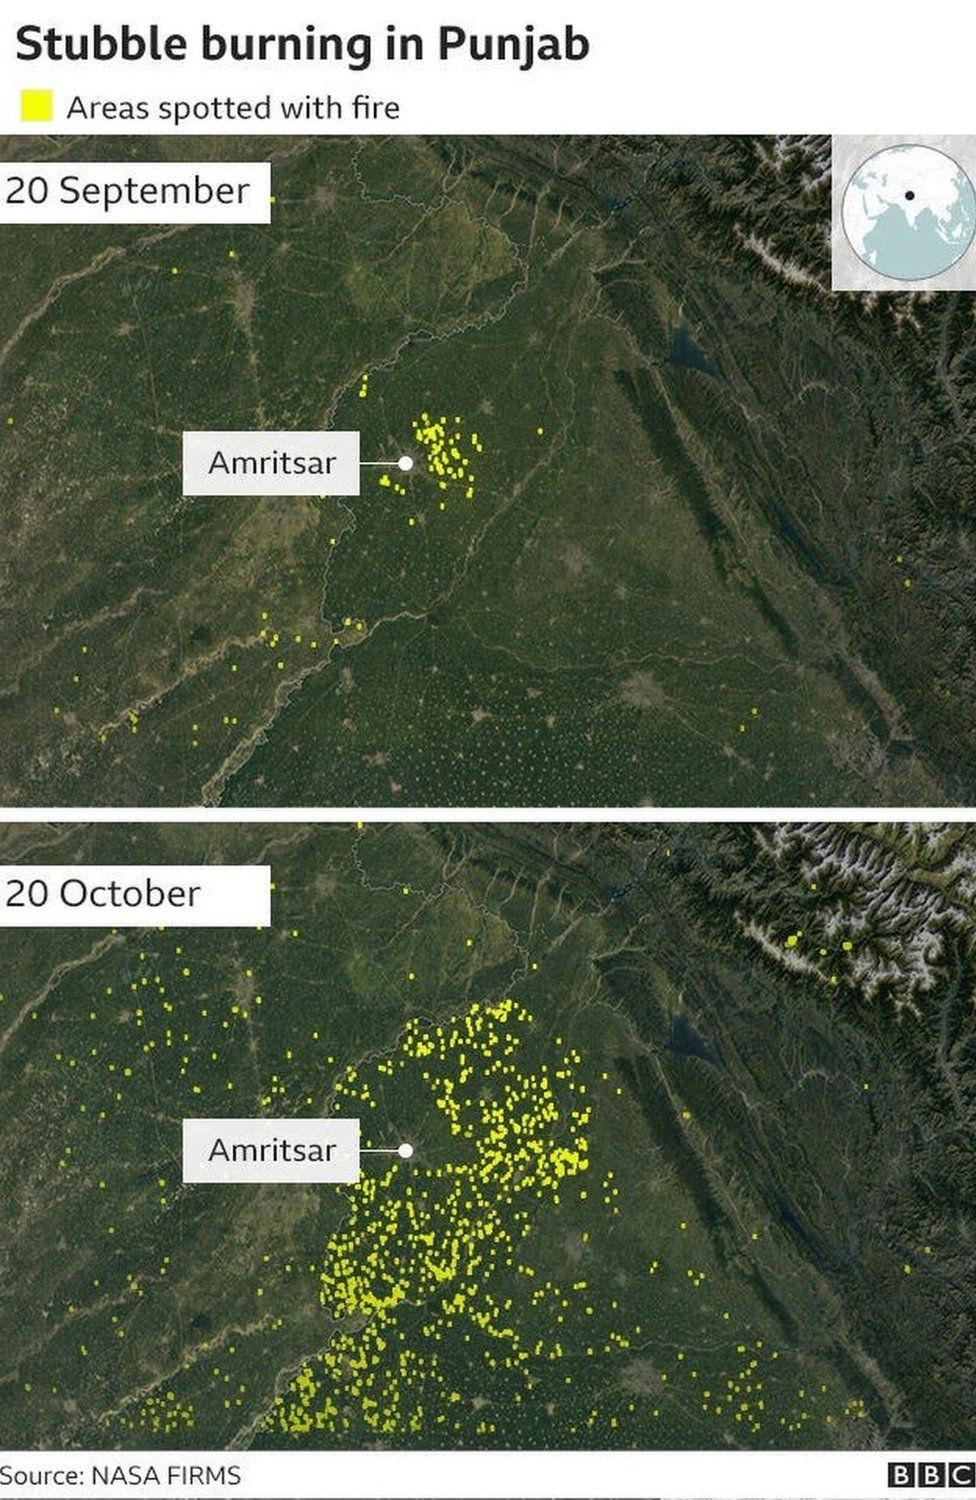 Graphic of stubble burning in Punjab